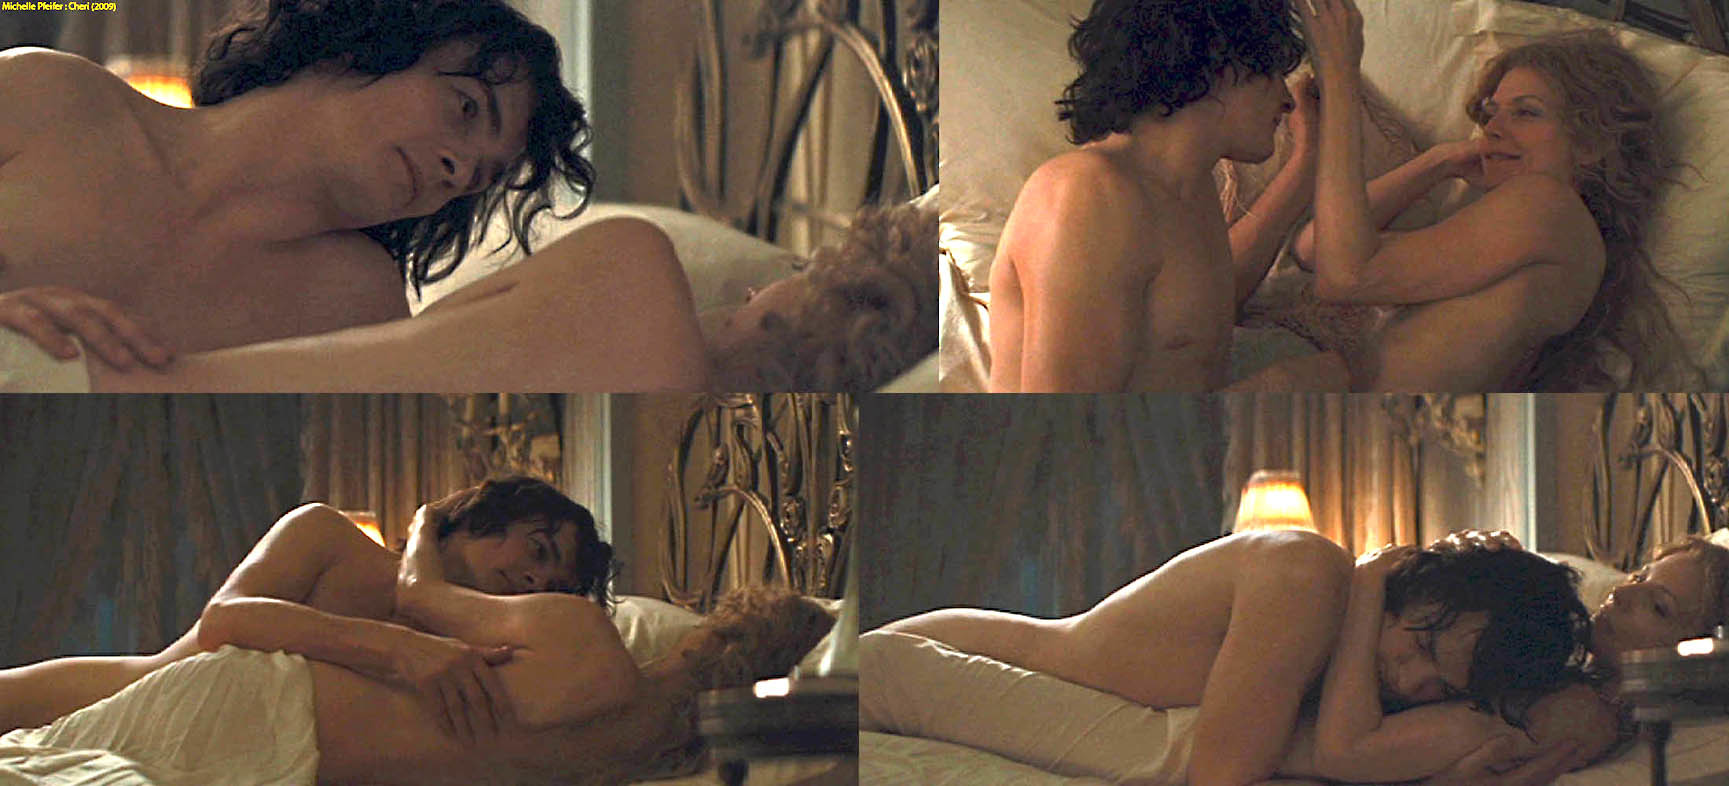 jessica beils ass and boobs compilation video